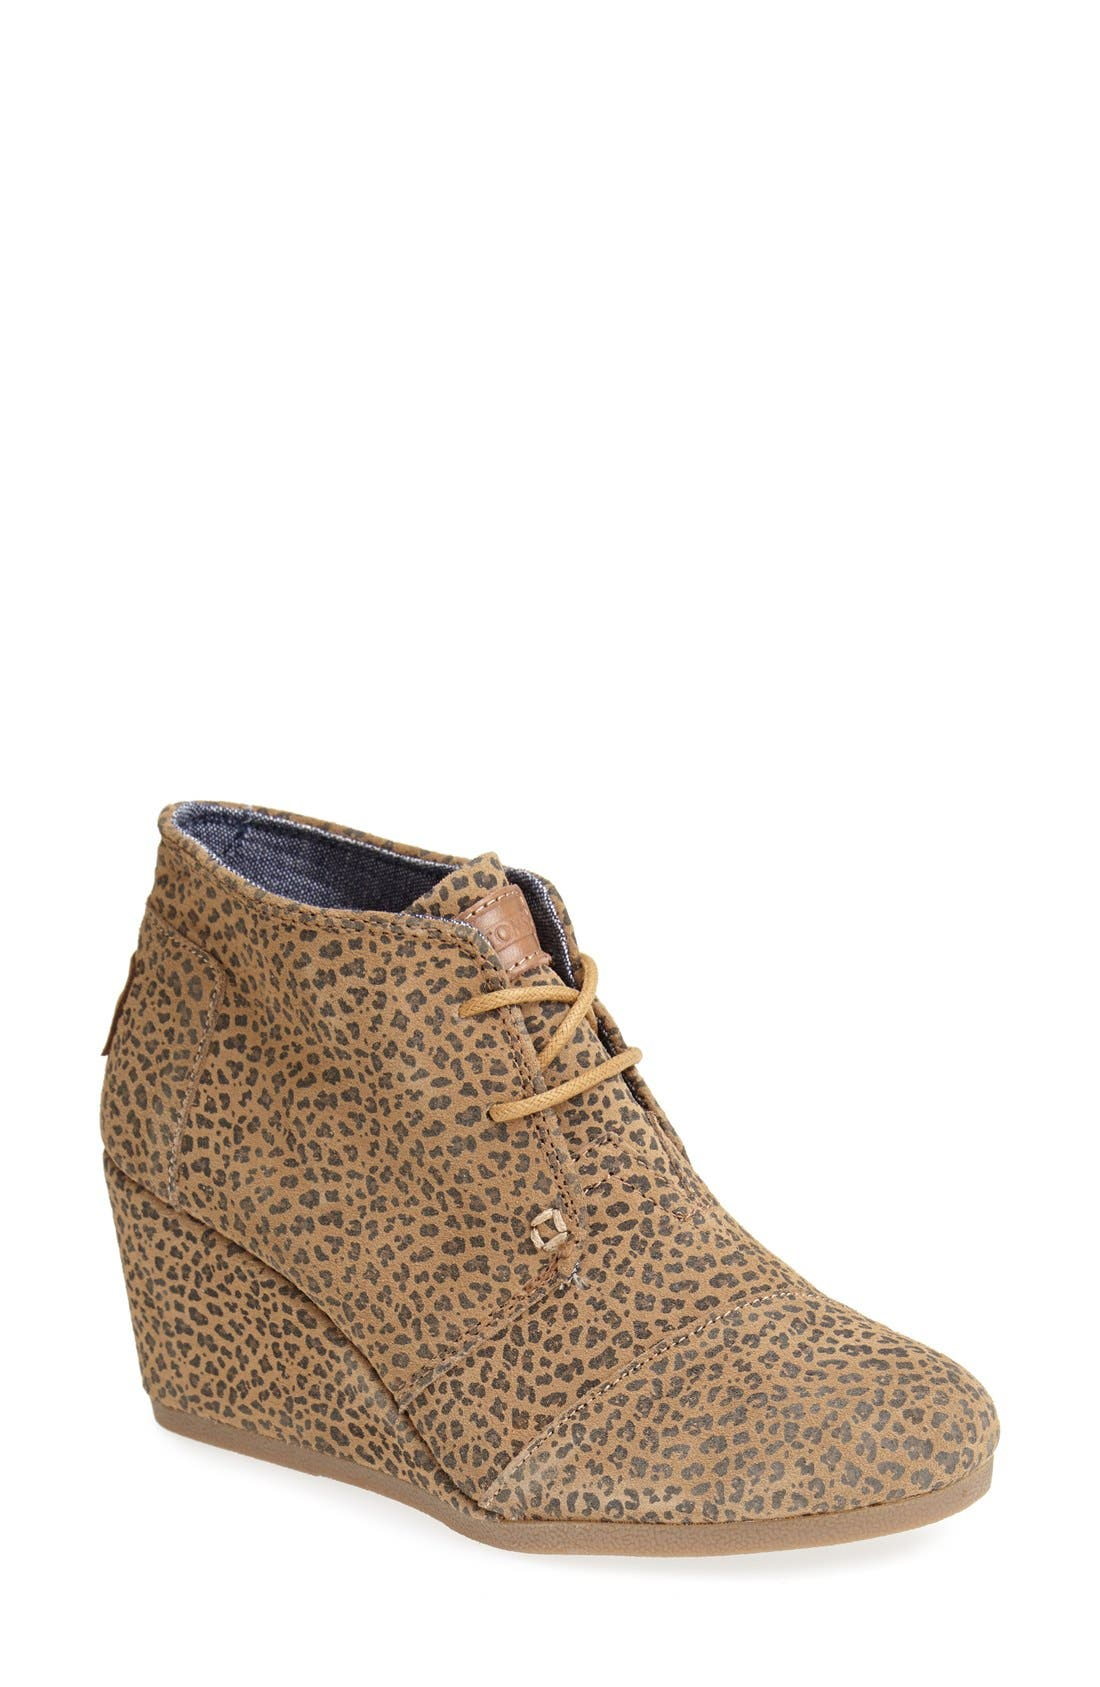 Main Image - TOMS SUEDE DESERT WEDGE